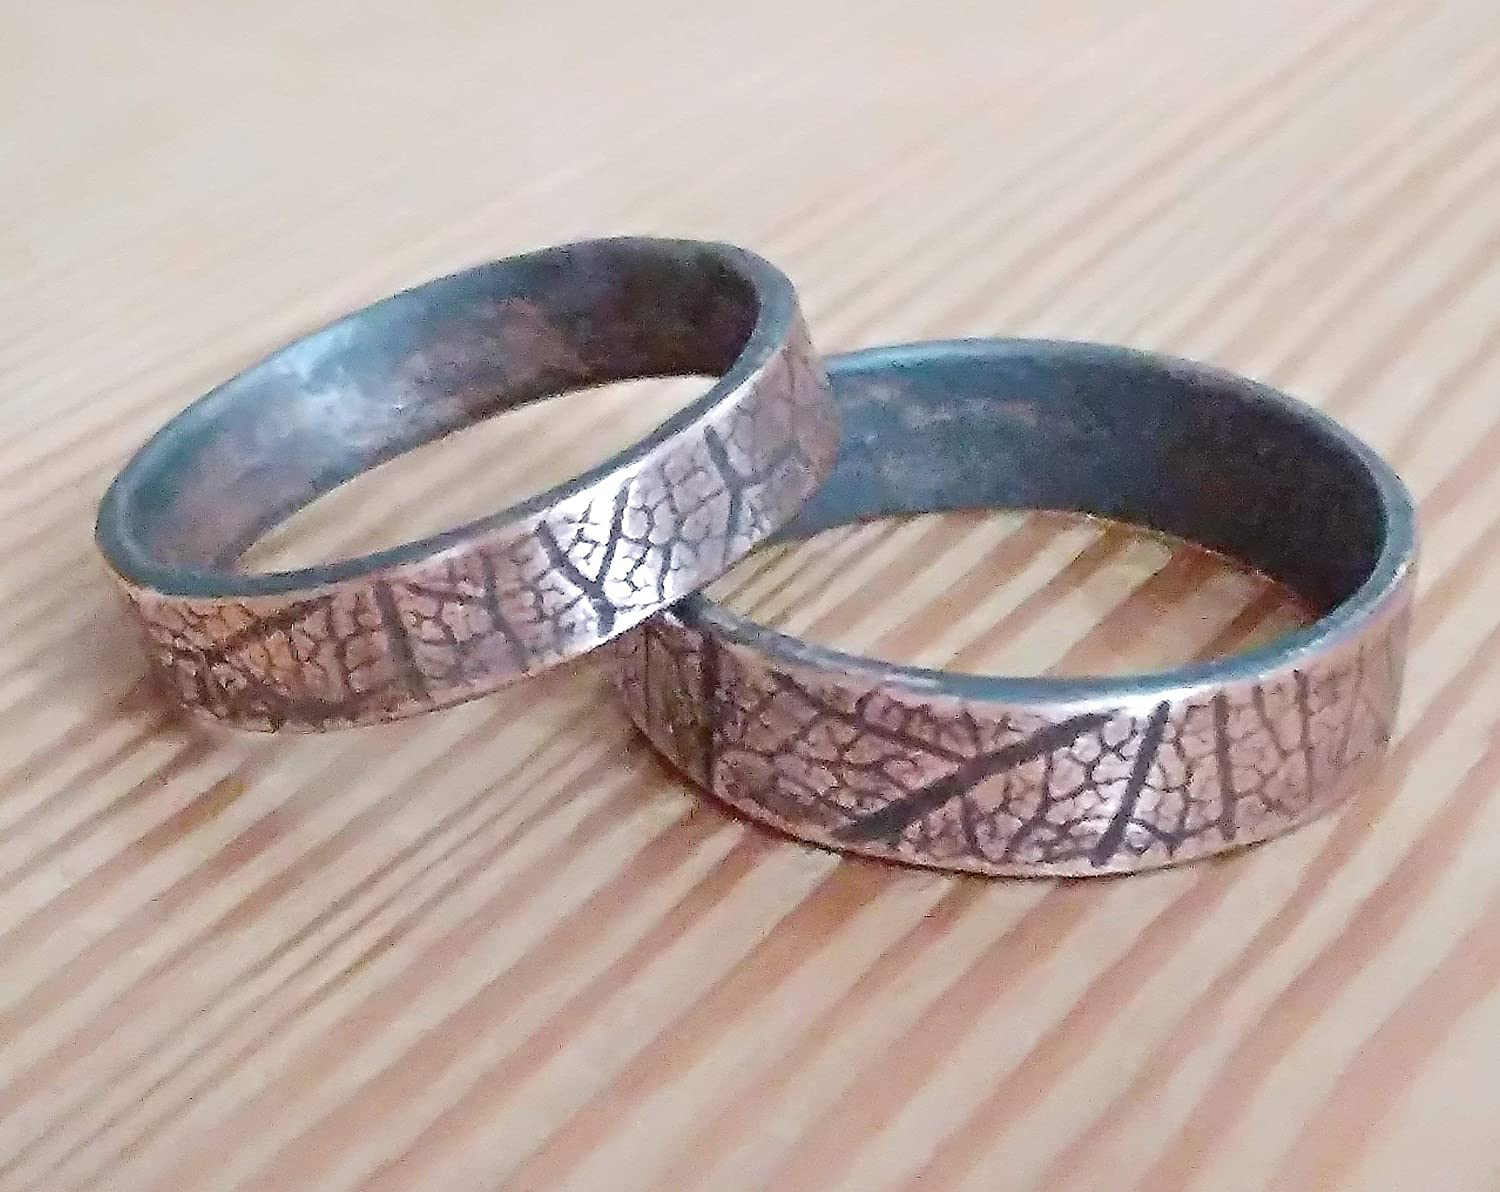 His and Her Couple Engagament Promise Rings Bands for Two Handmade Copper Oxidized Rings Leaf Engraved Personalized in Hebrew or English Texture Band Wedding Unique Ring Rustic Mens Band Unisex ring